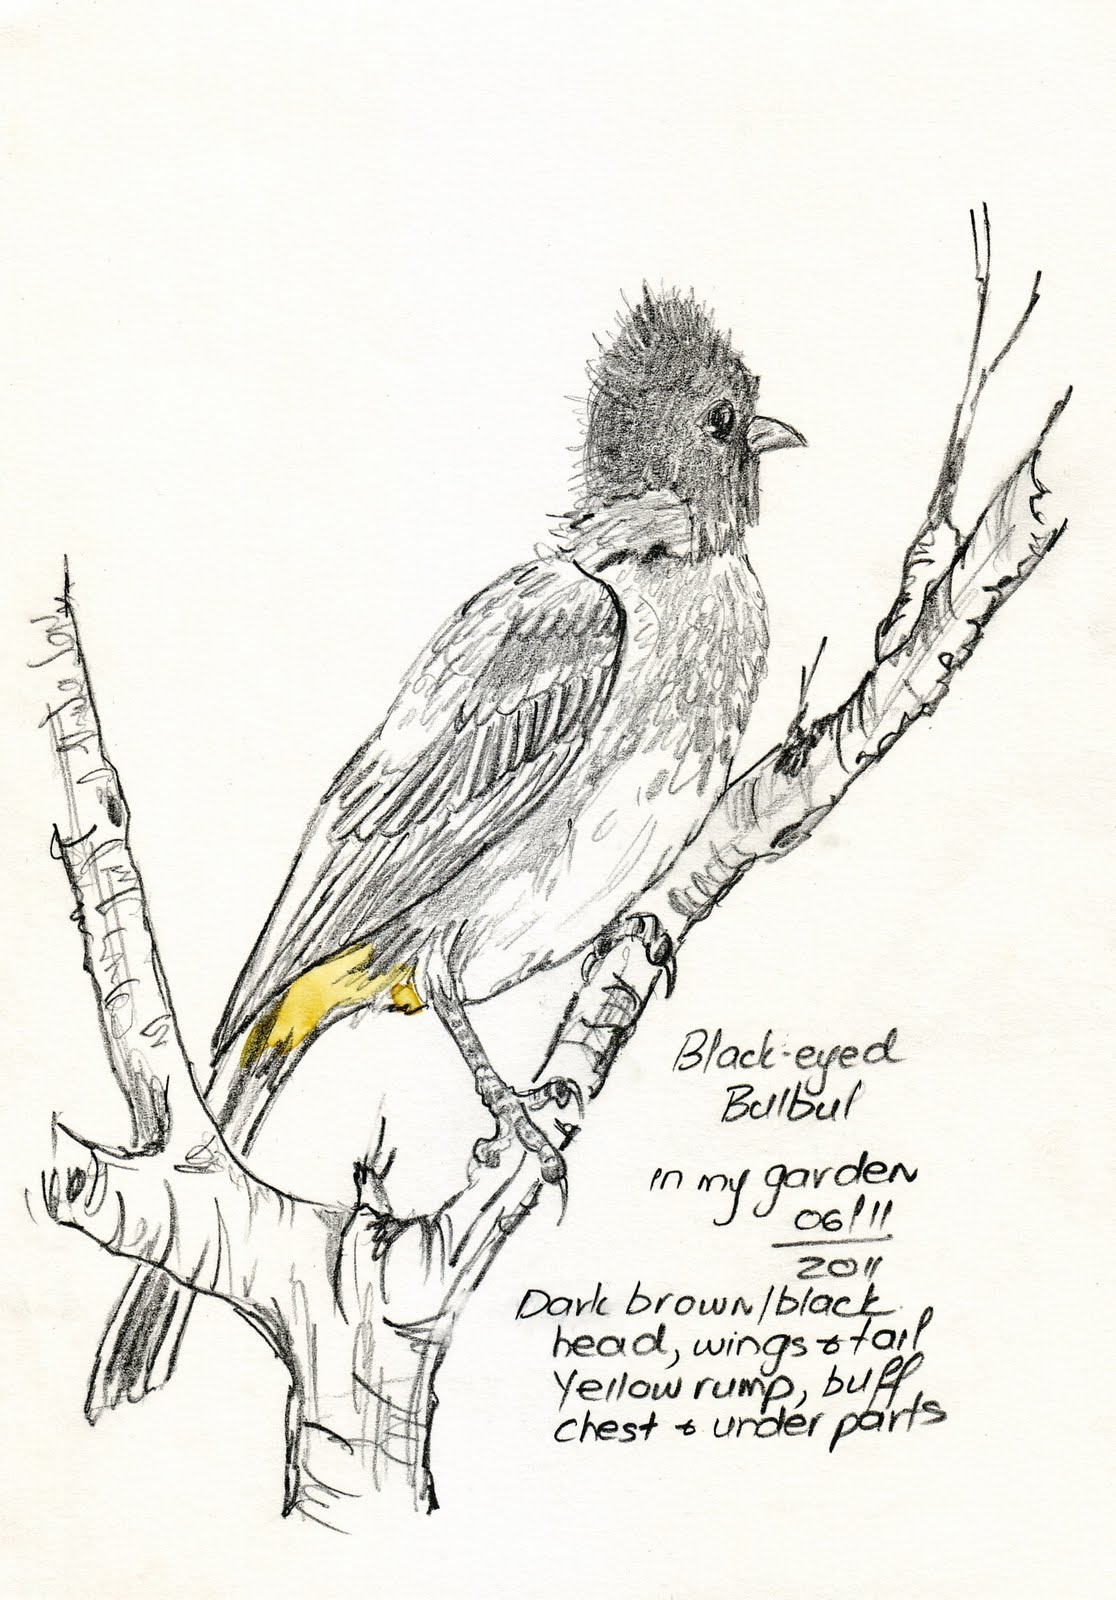 Sketching In Nature Blackeyed Bulbul Sketch - Maree